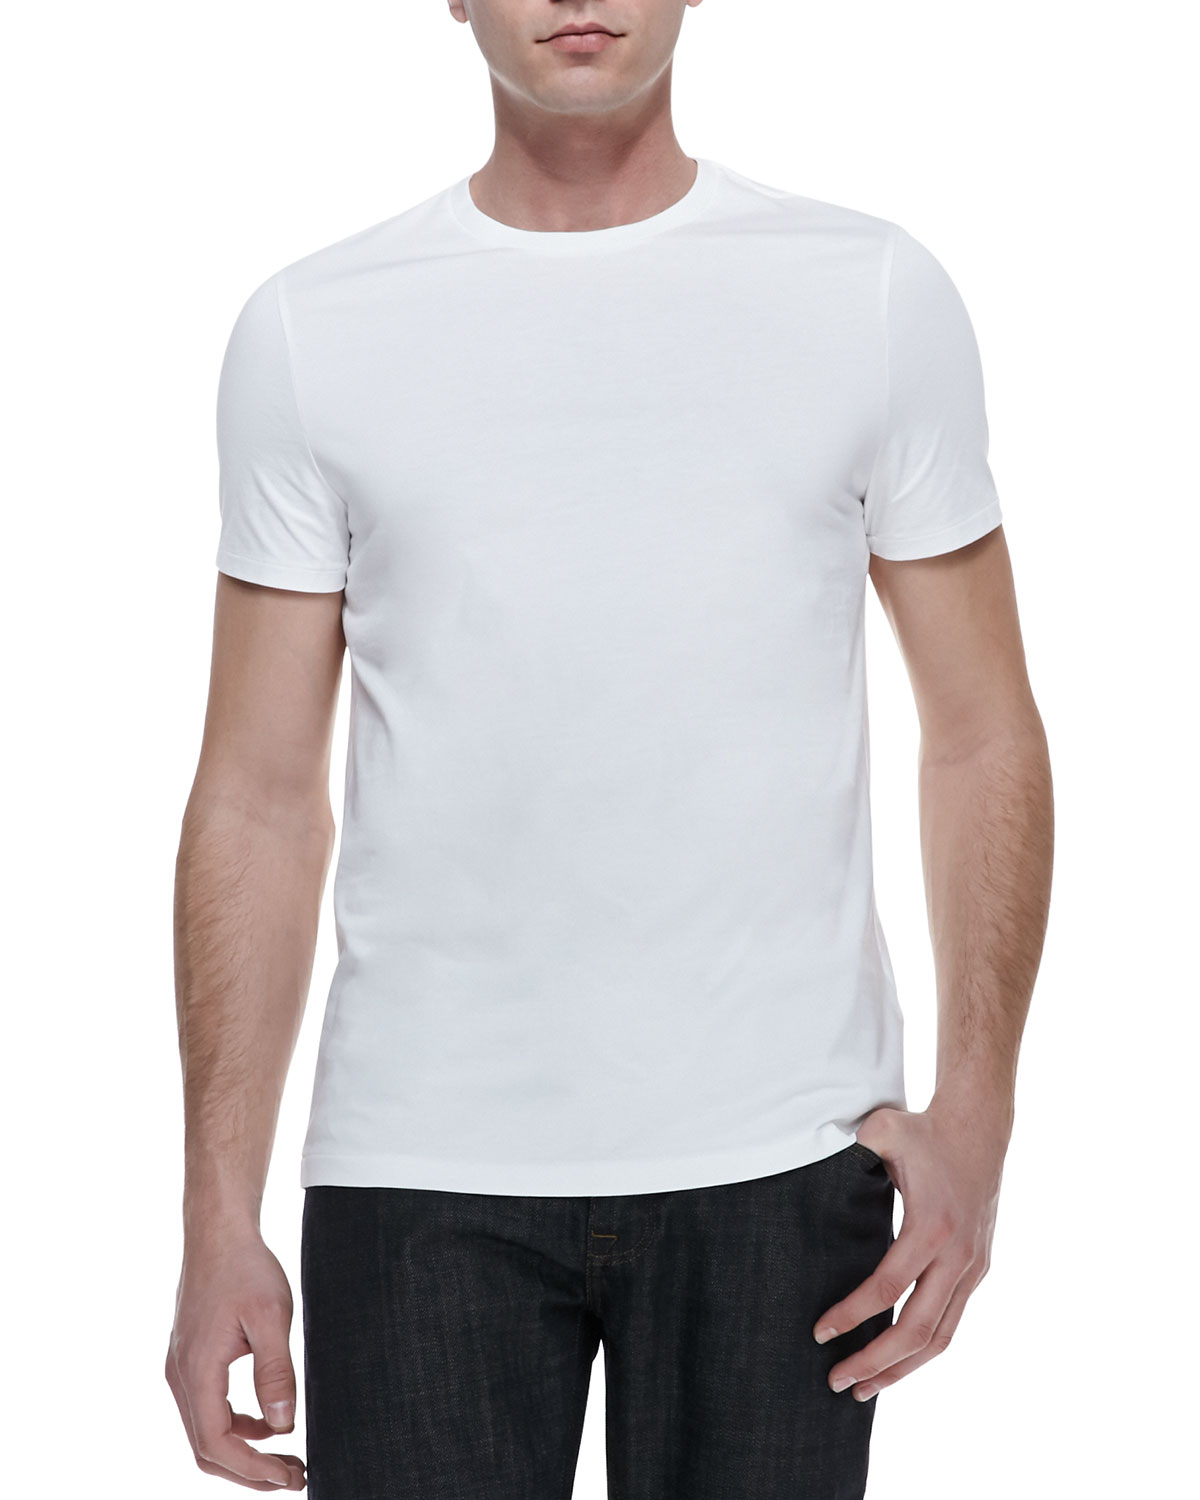 Basic Short-Sleeve T-Shirt, White